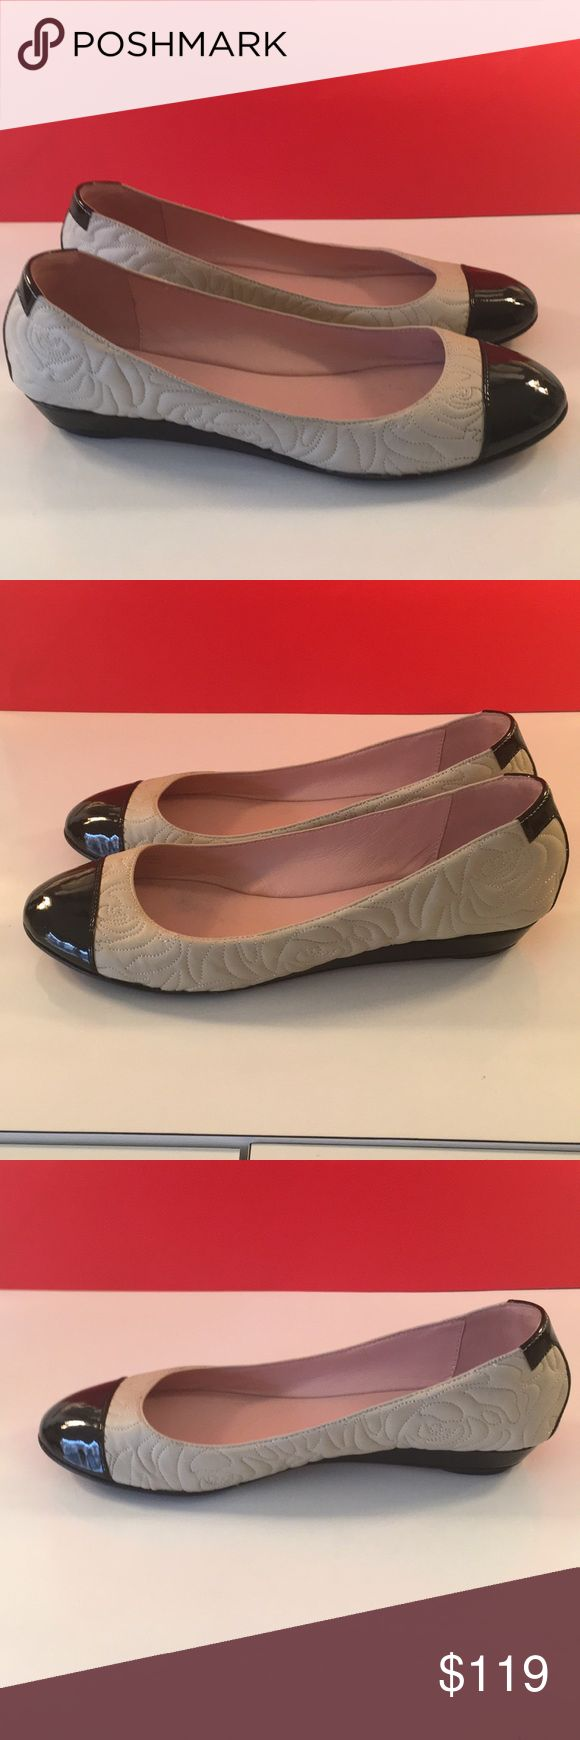 ❤️TARYN ROSE LOVELY FLATS 💯AUTHENTIC ❤️TARYN ROSE LOVELY FLATS 💯AUTHENTIC ! SO PRETTY AND STYLISH ALWAYS ON TREND! TRUE HIGH END LUXURY AND STYLE! THE ARE VERY LIGHT TAN AND BLACK! JUST LOVELY AND ONLY WORN A FRE TIMES! THEY ARE SIZE 8 Taryn Rose Shoes Flats & Loafers